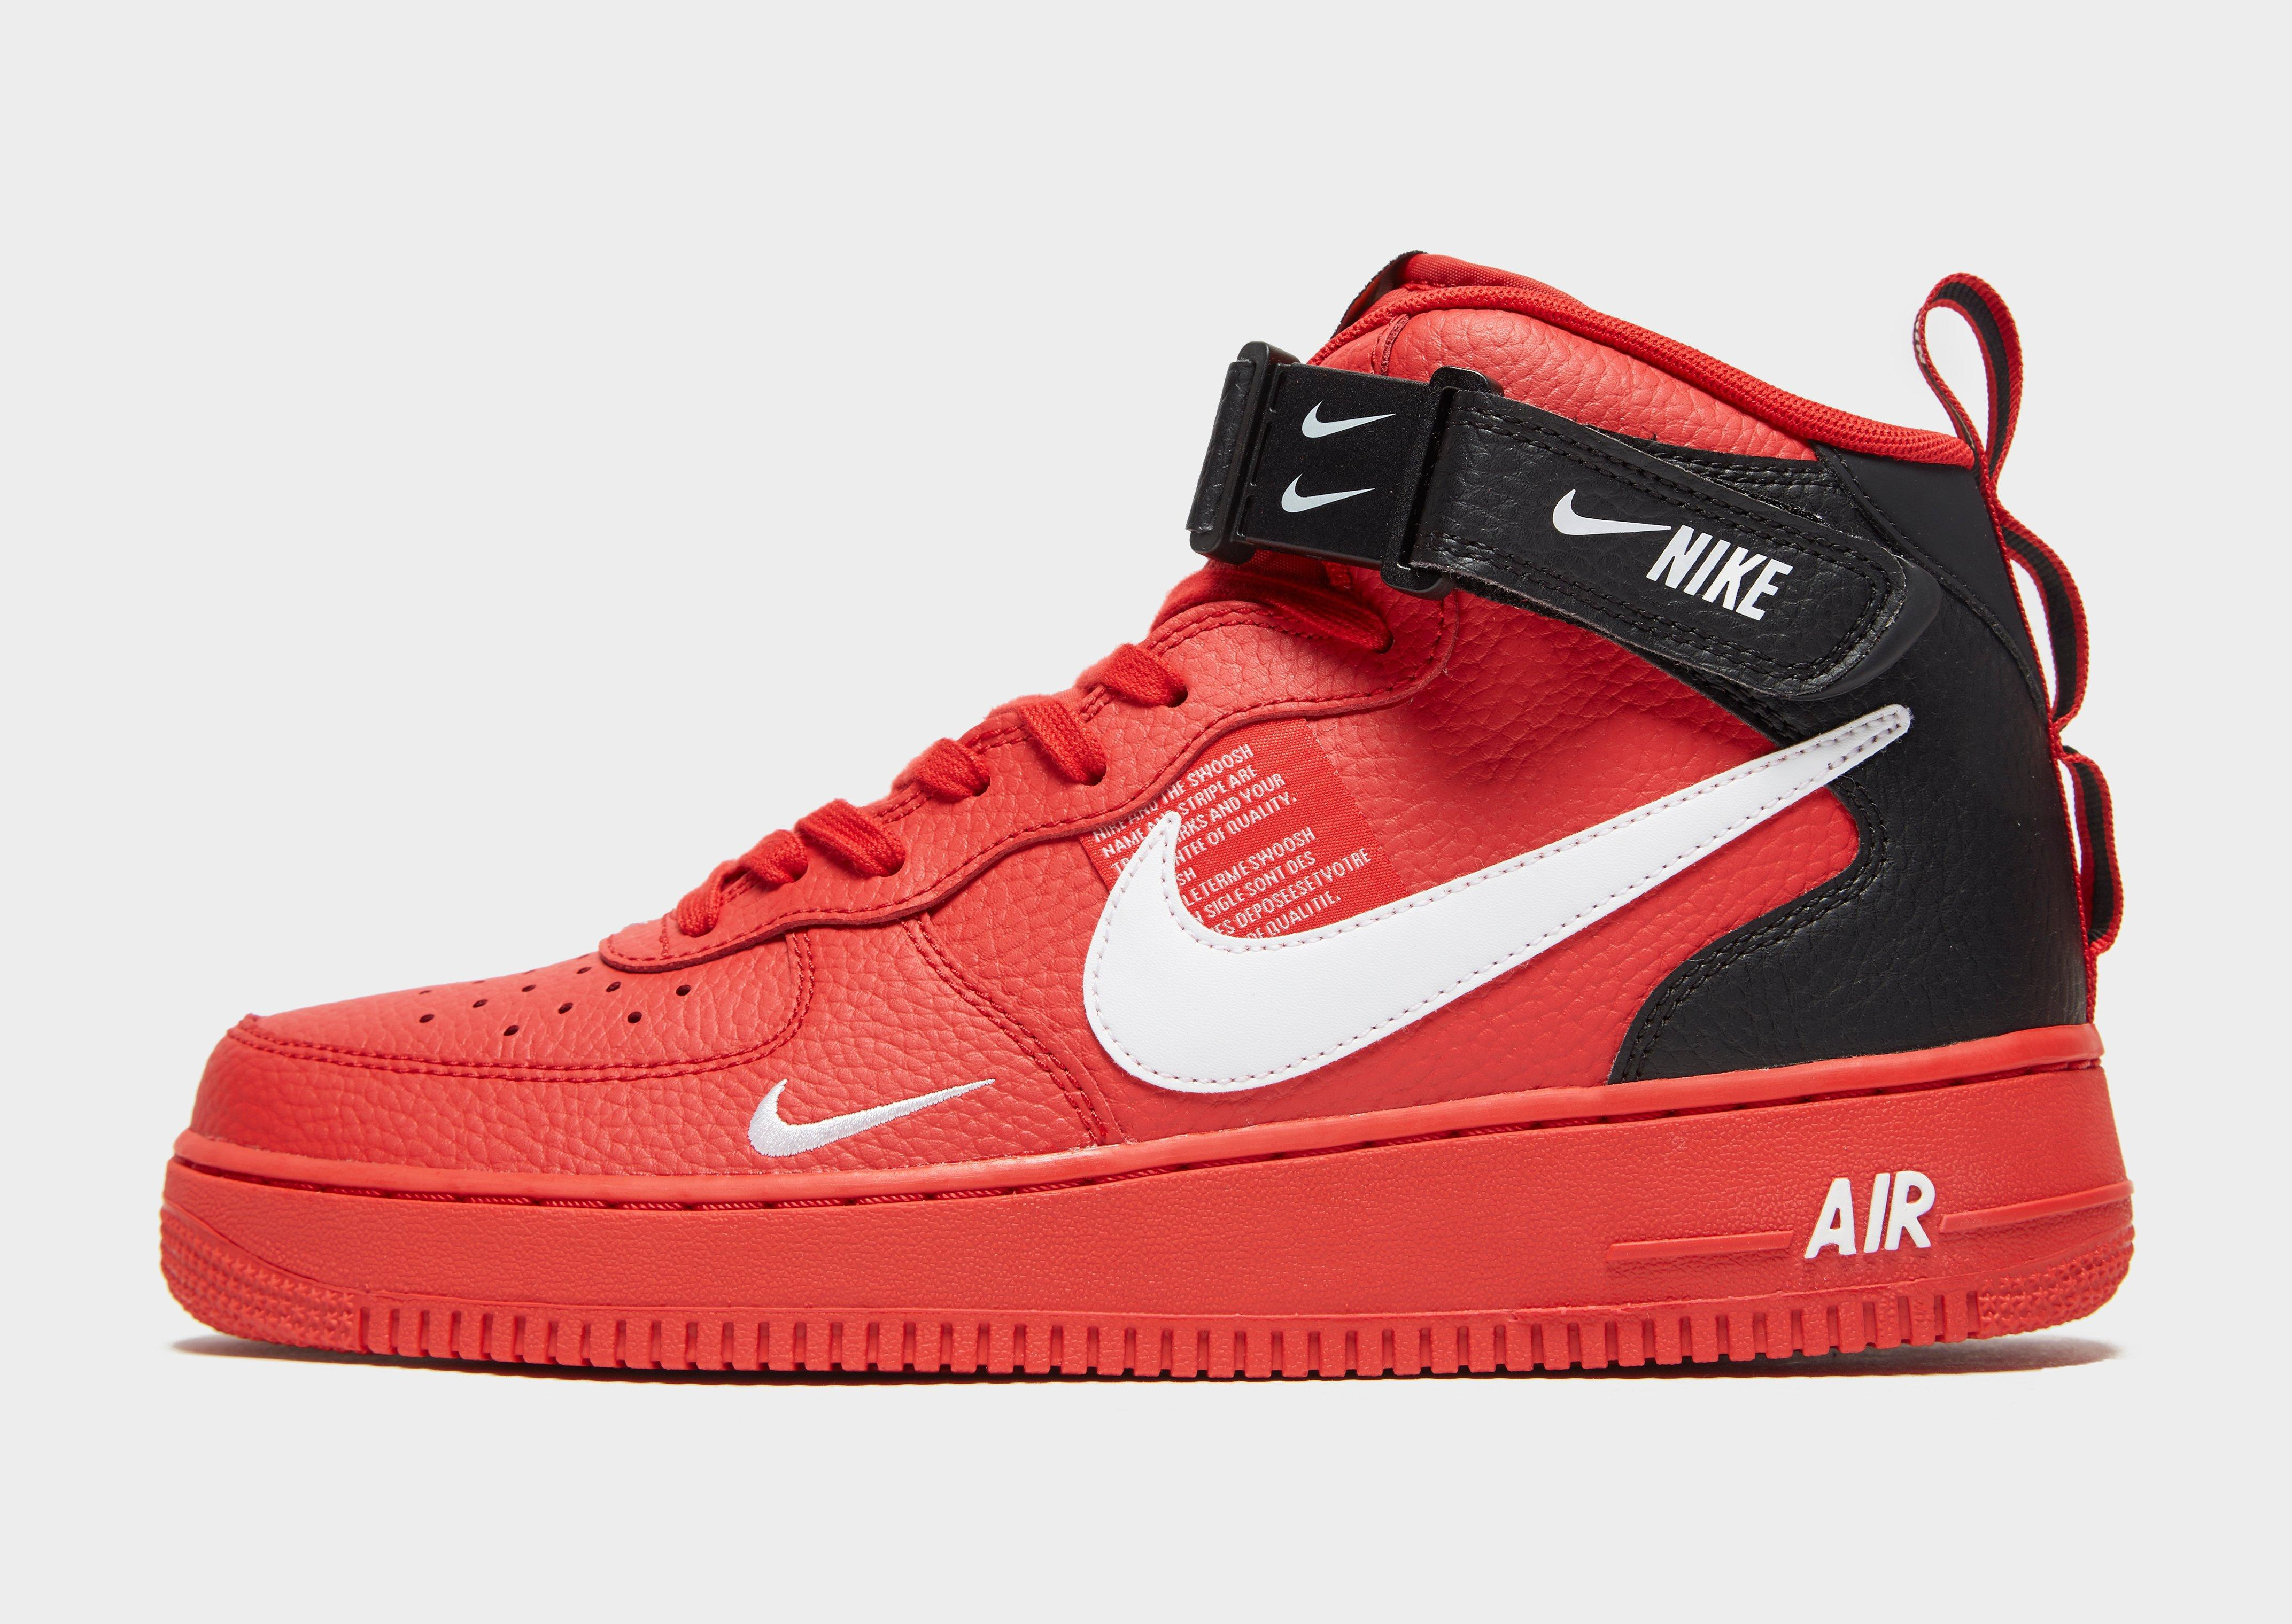 newest c2b8b 43835 Nike Air Force 1 07 Mid Lv8 Shoe in Red for Men - Lyst